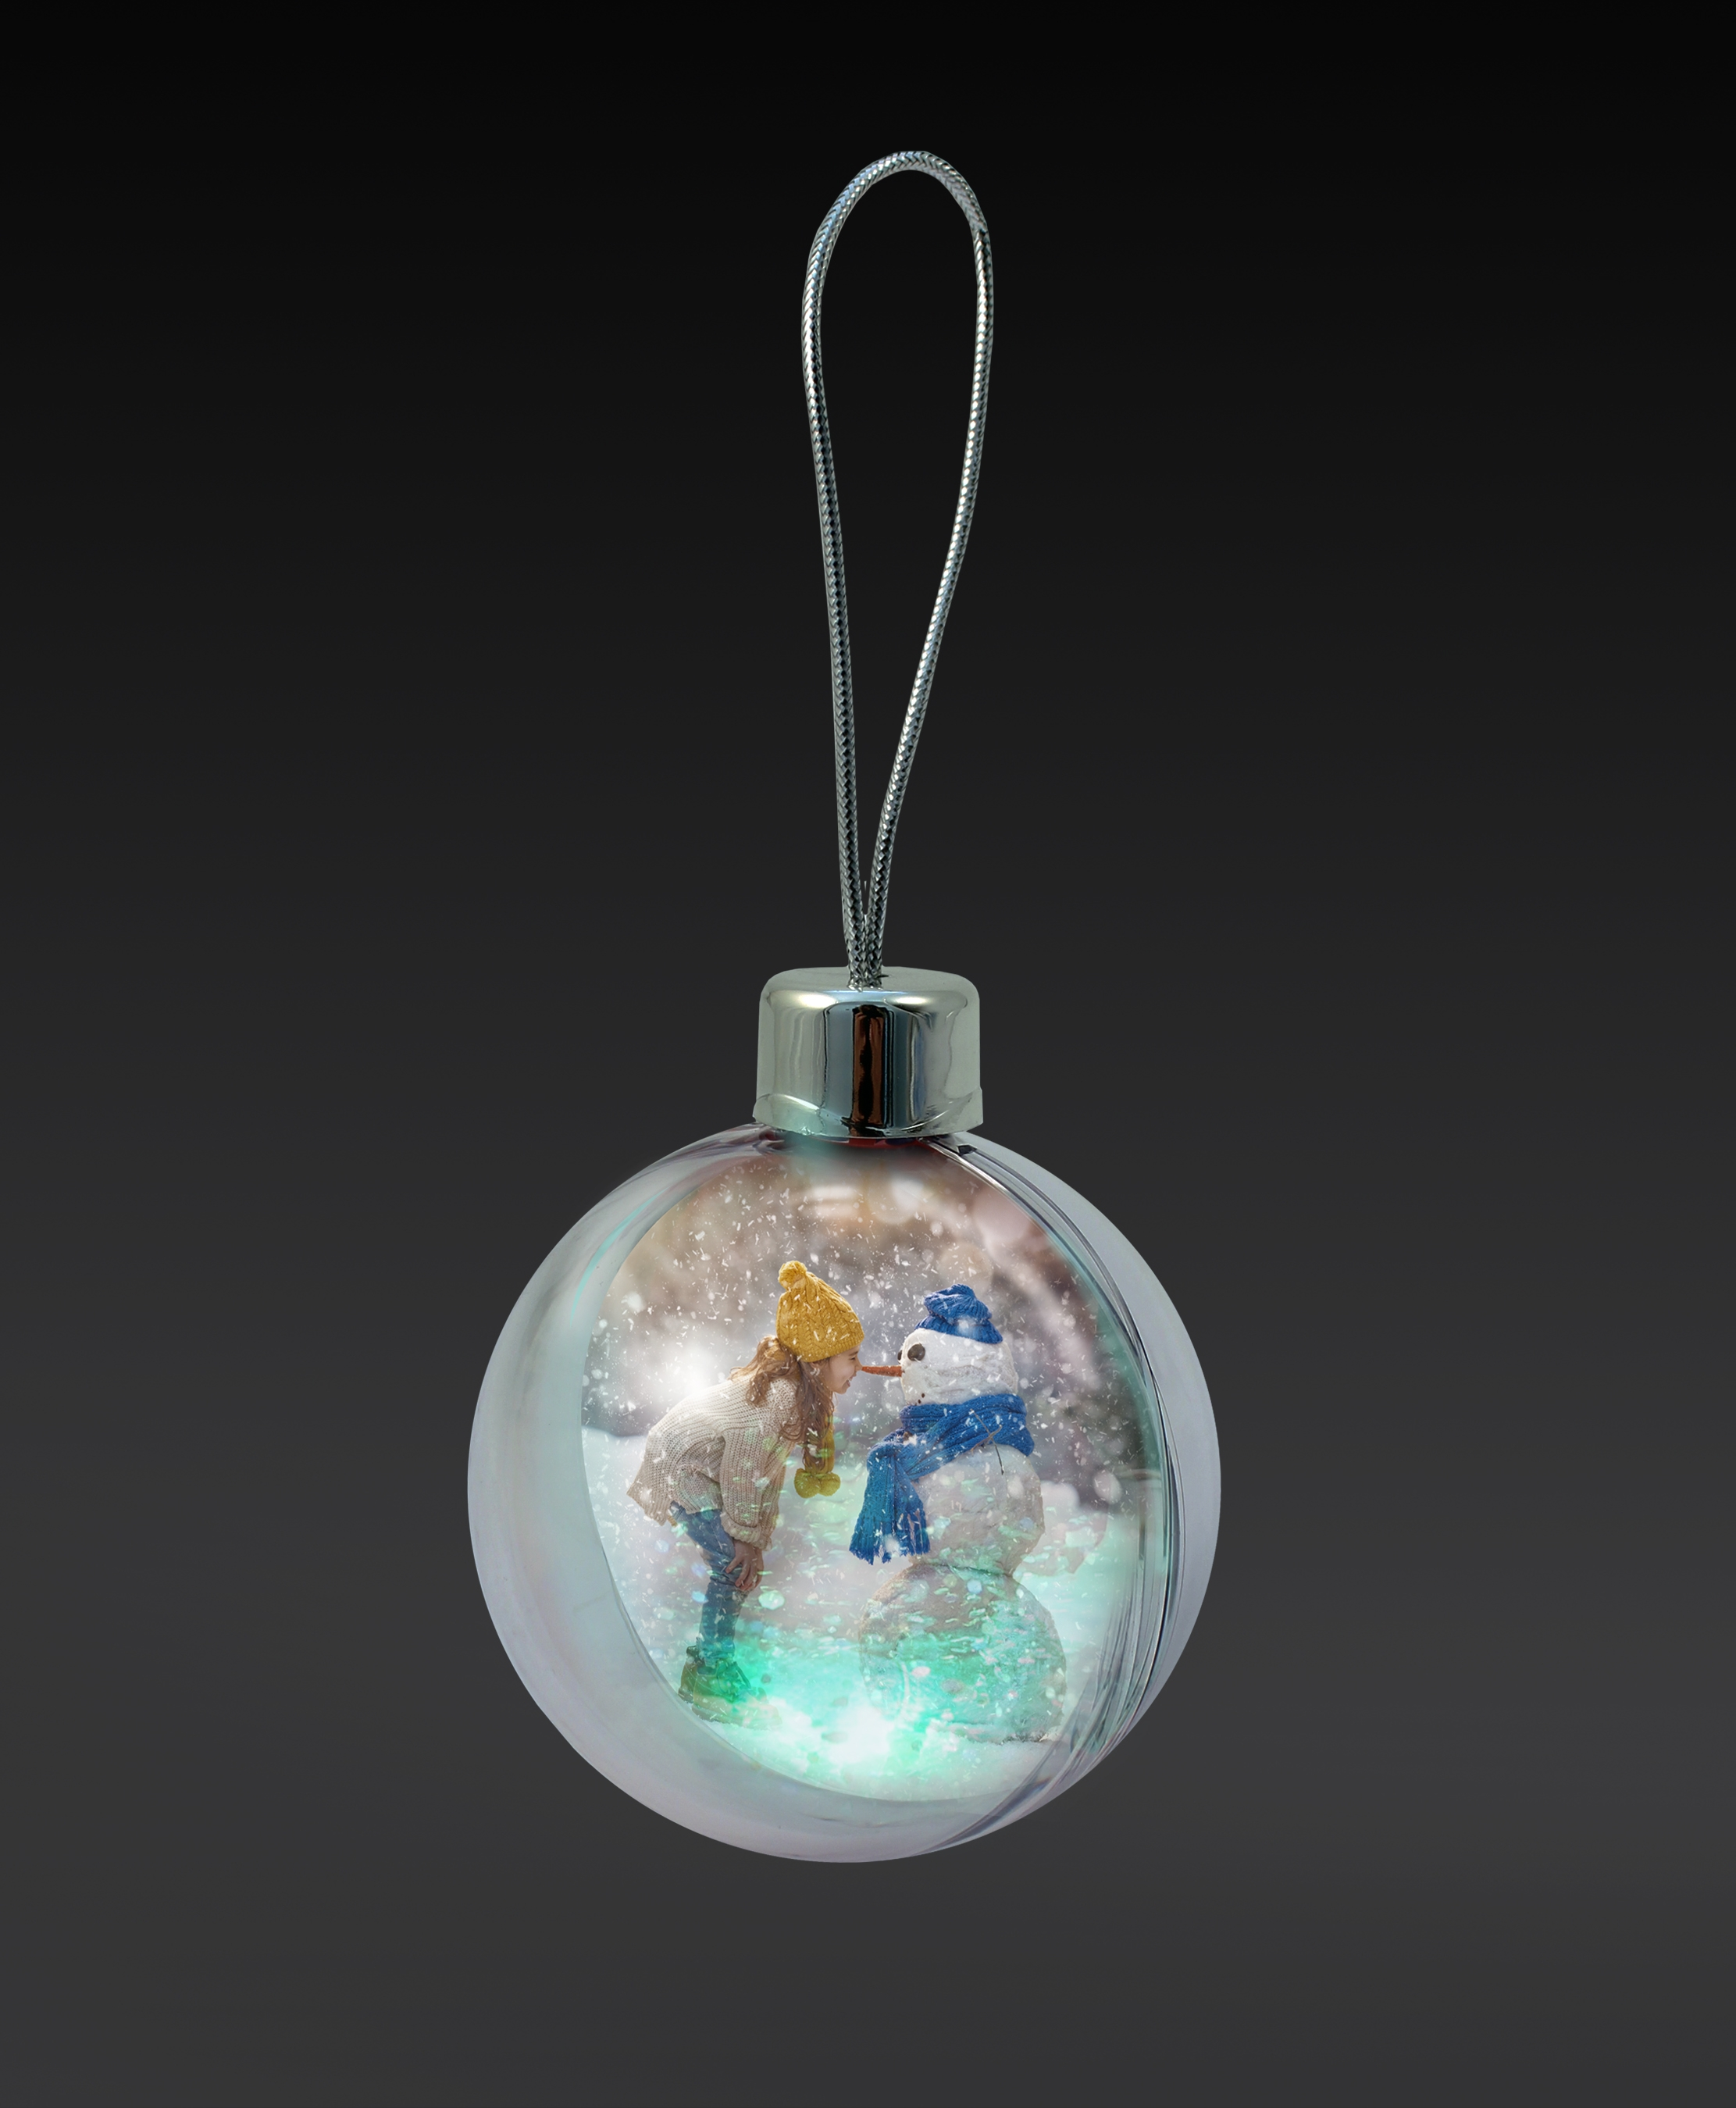 Light-Up Photo Bauble Cap